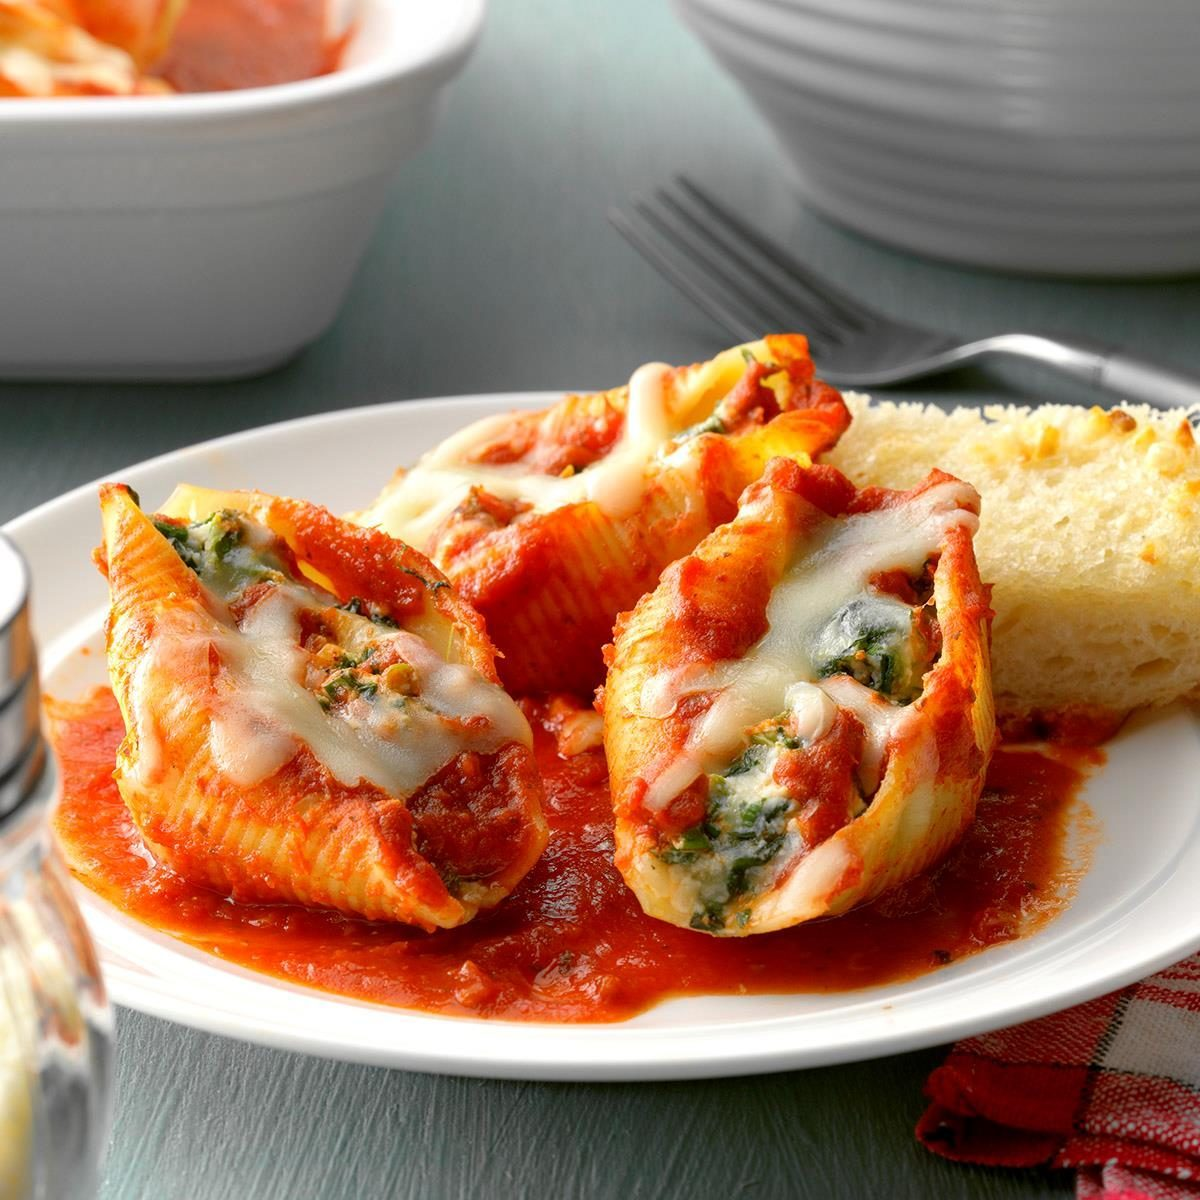 Inspired by: Olive Garden's Giant Cheese Stuffed Shells